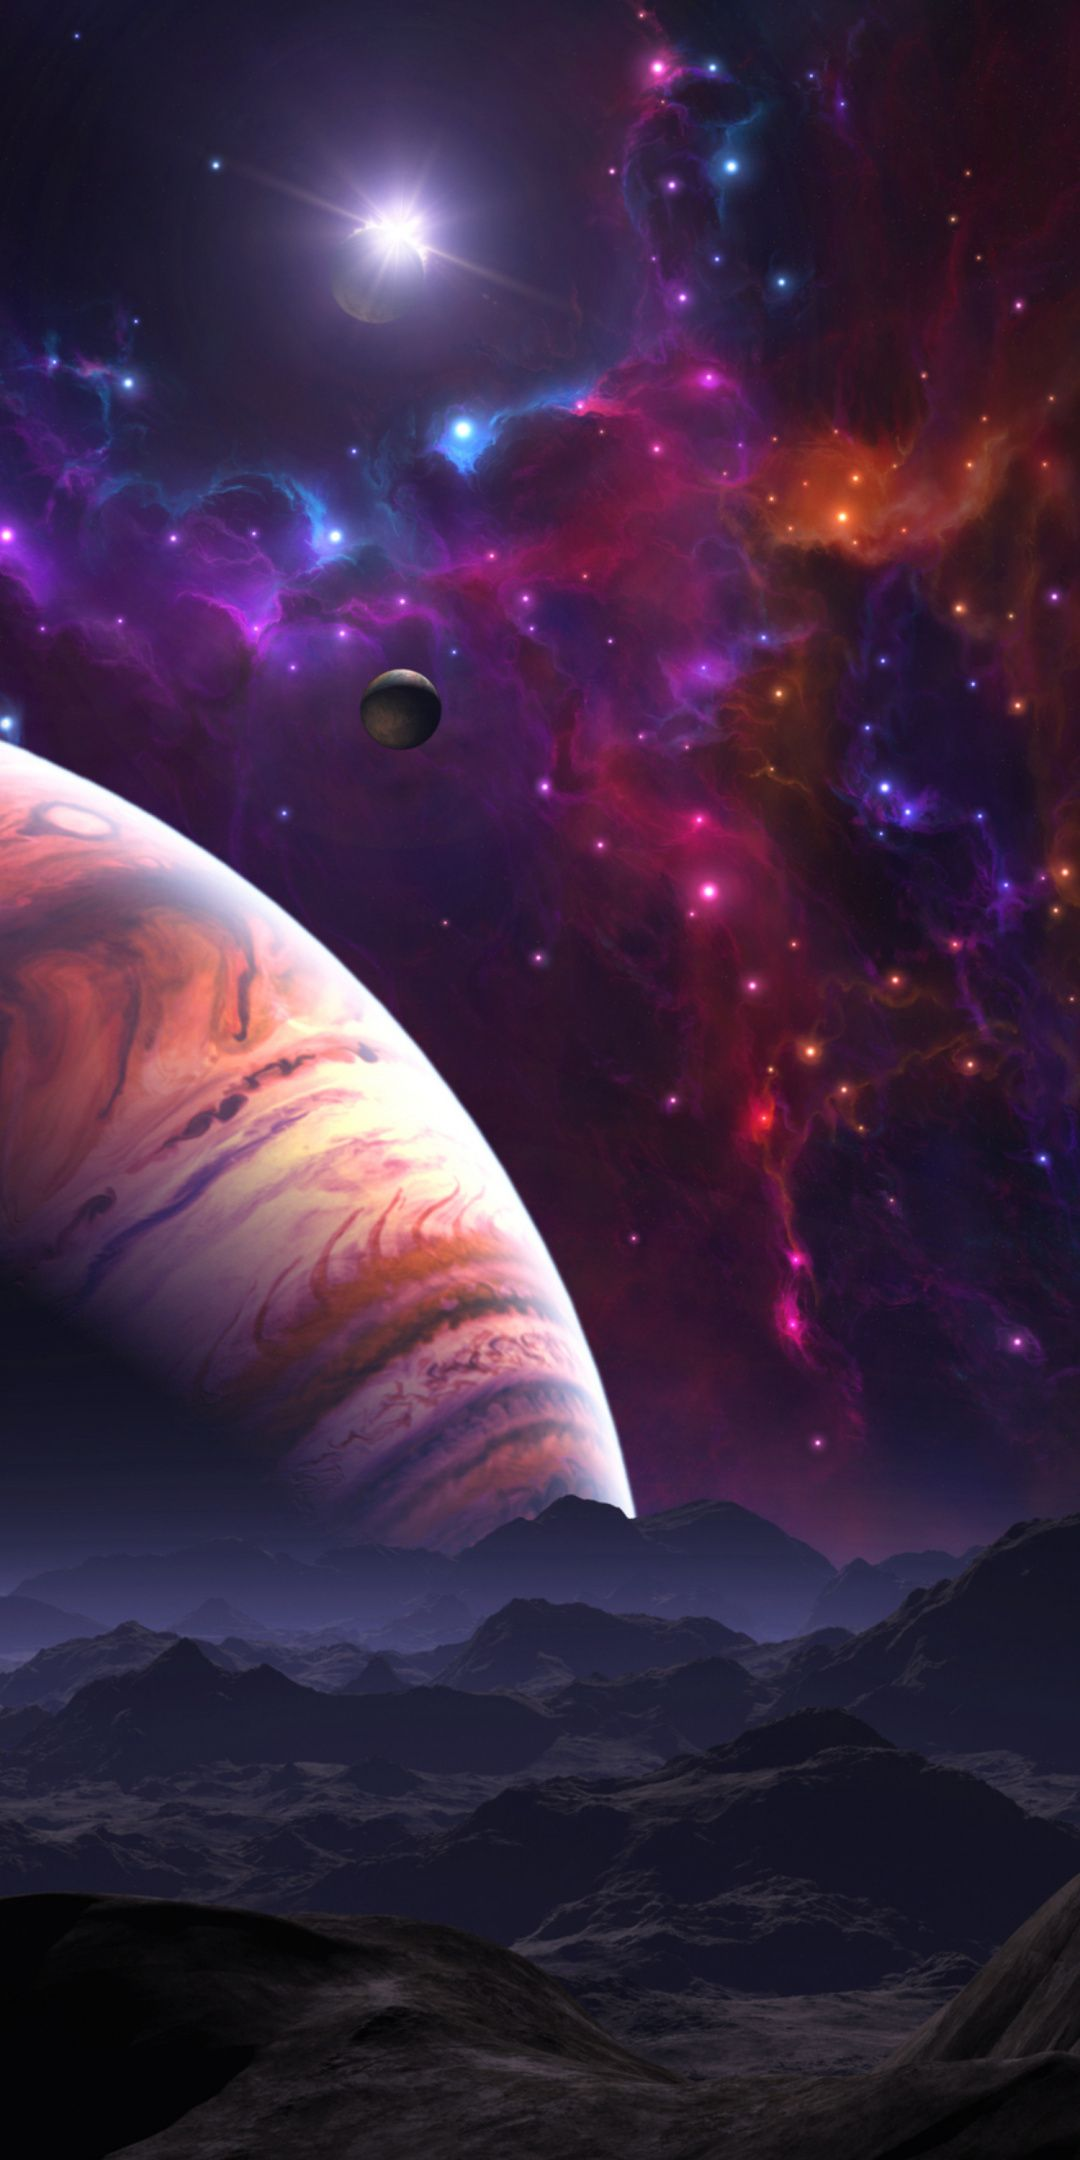 Clouds Fantasy Space Landscape Colorful Space Planets 1080x2160 Wallpaper Space And Astronomy Space Planets Universe